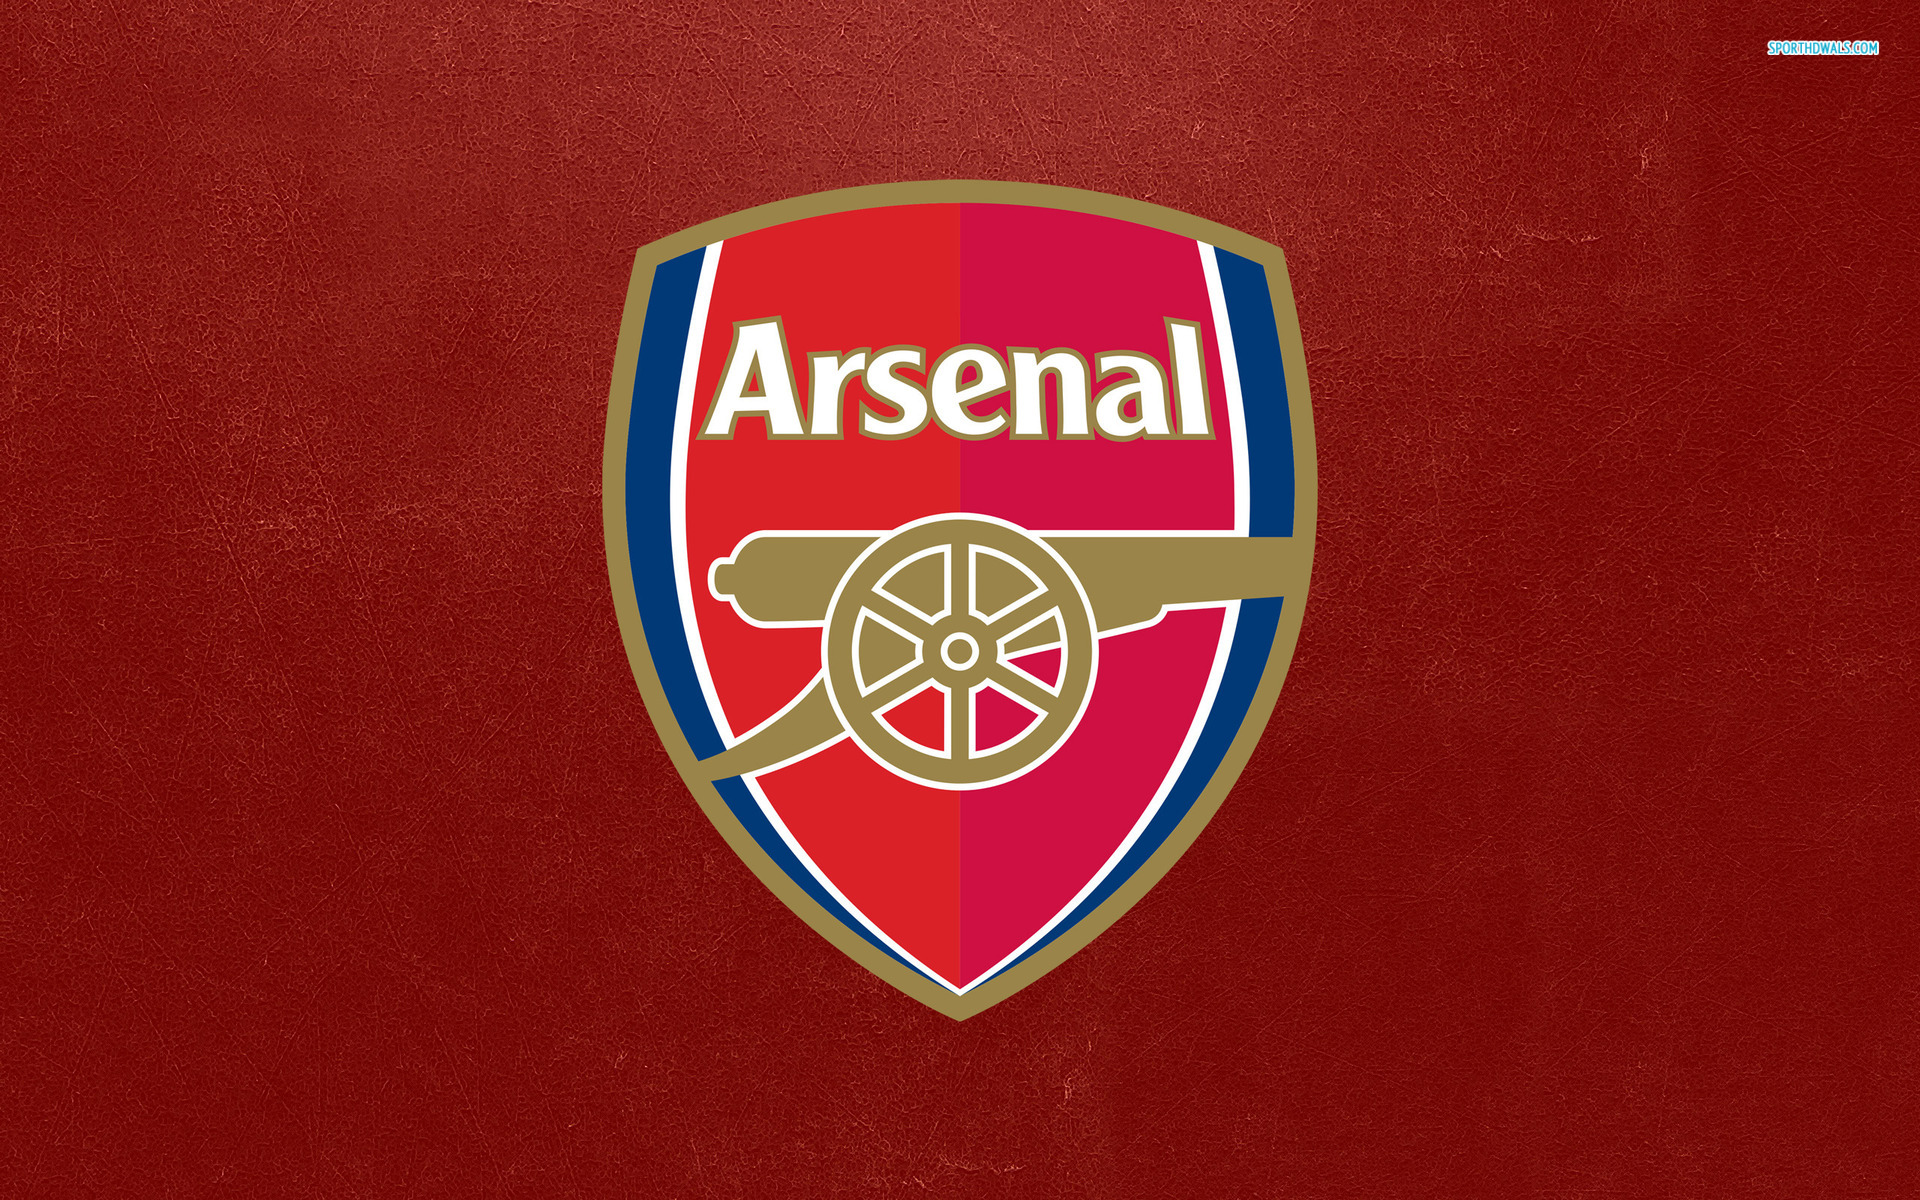 Arsenal Fc Wallpaper - WallpaperSafari